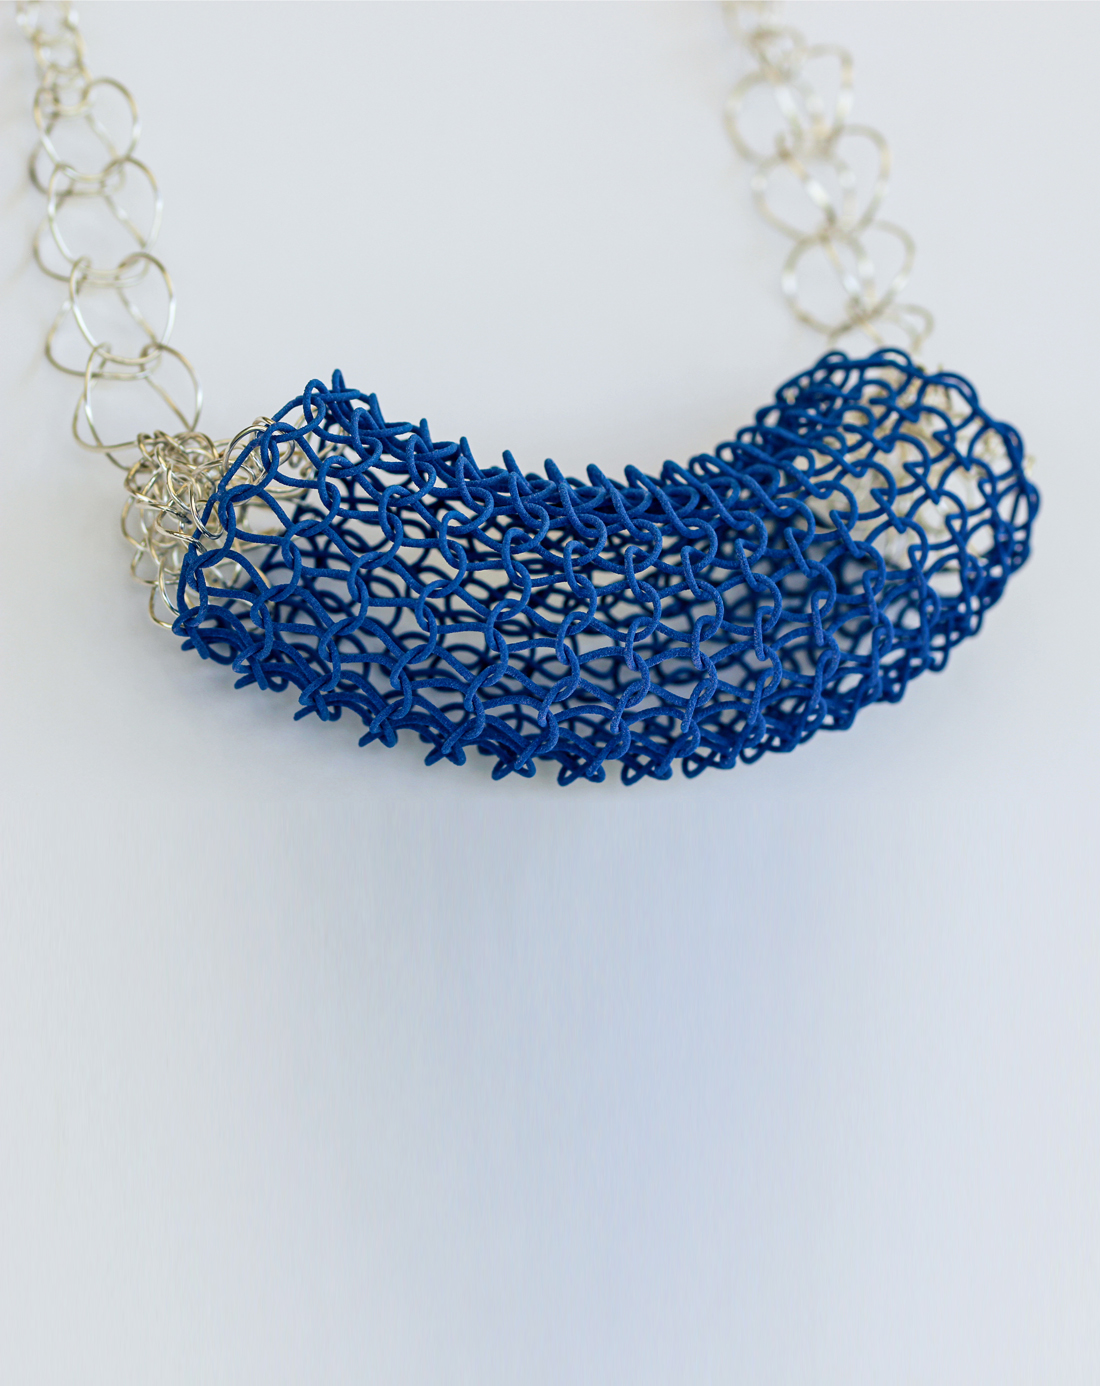 3d knitting necklace